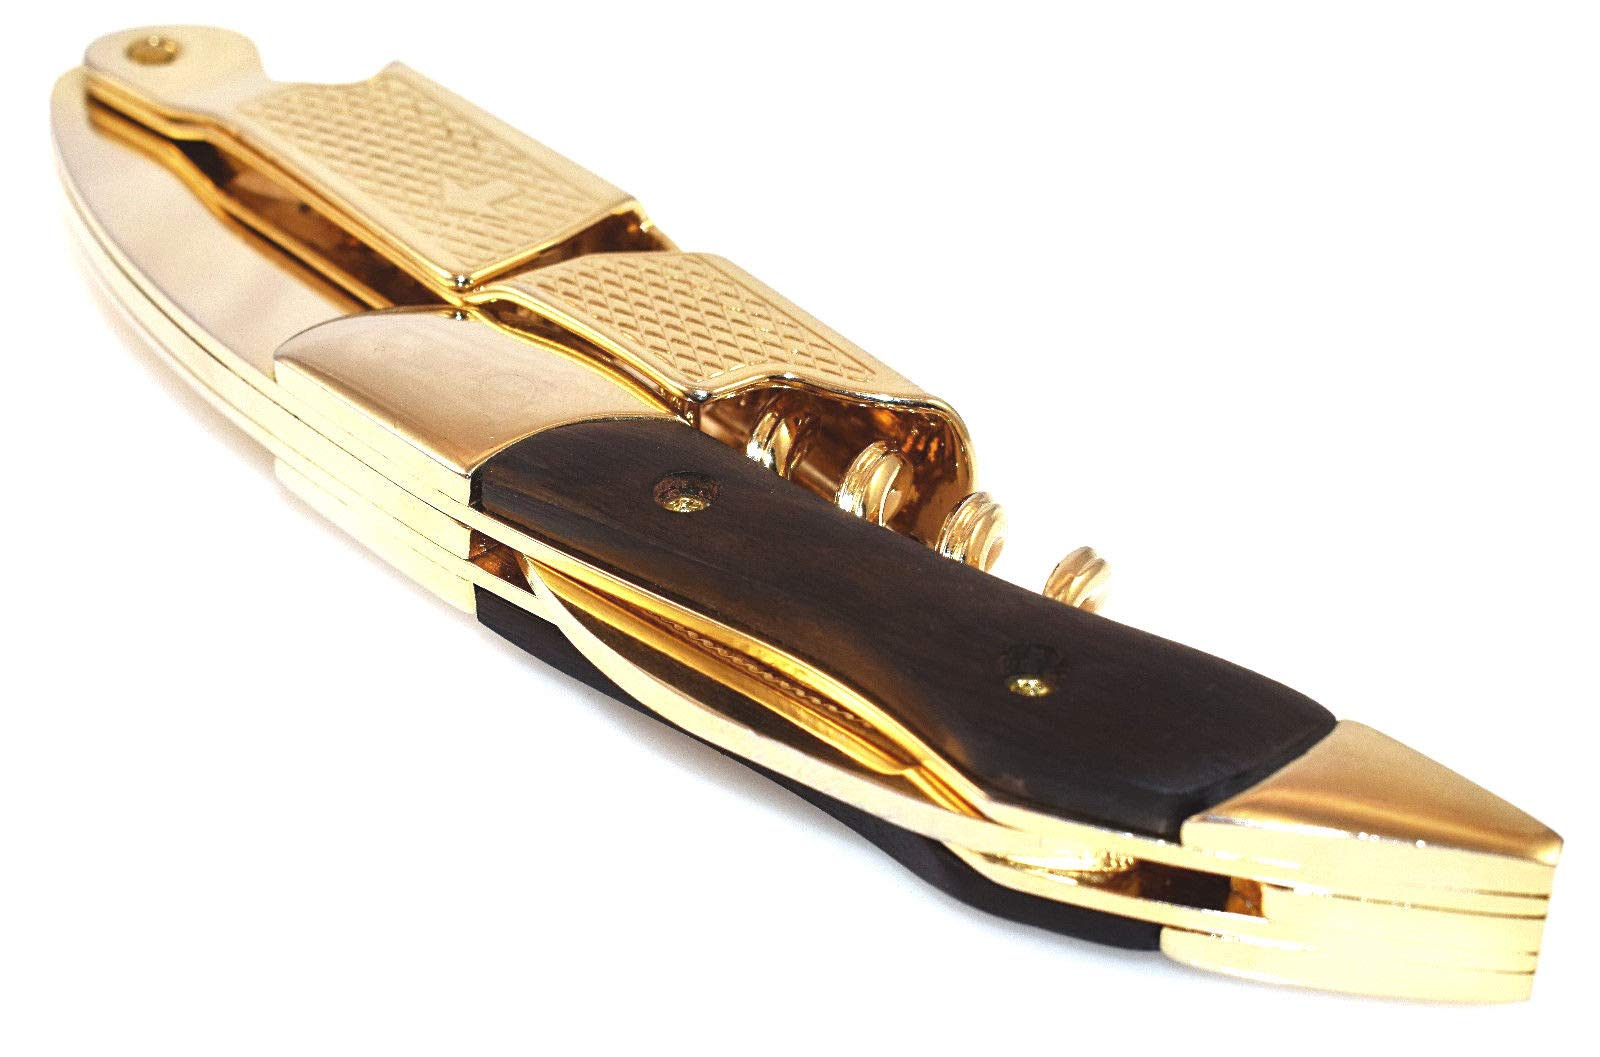 Gold & Black Corkscrew Wood Handle Professional Double Hinge Waiters Wine Key by Tipsy Wine Products